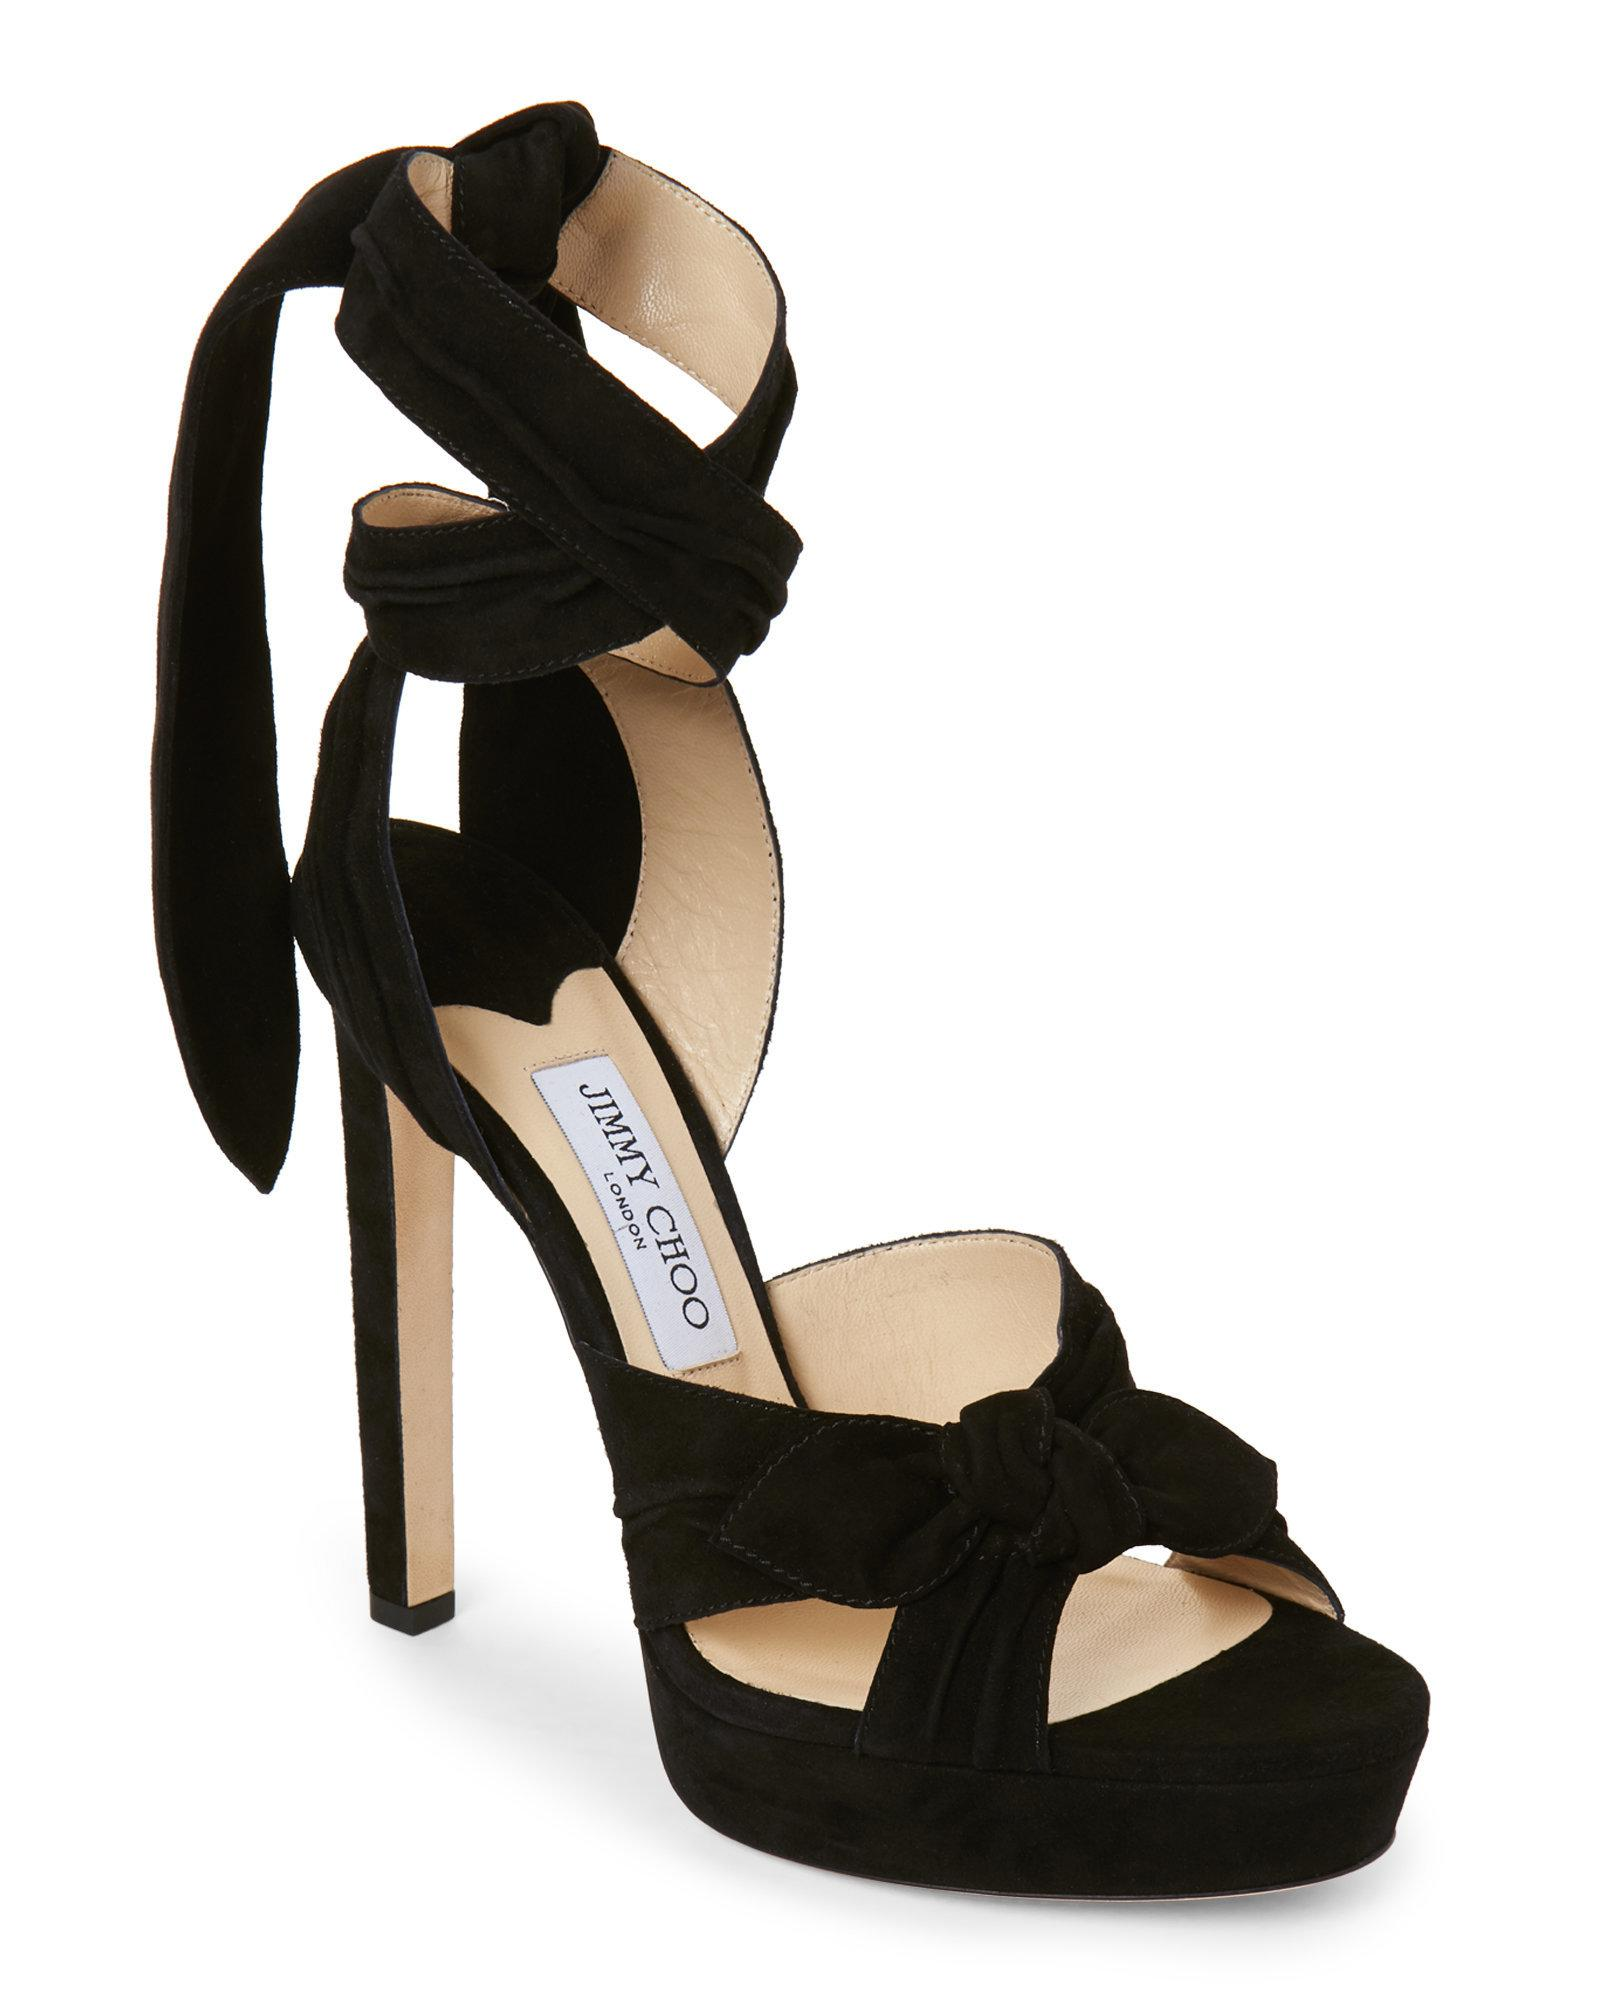 clearance very cheap Jimmy Choo Wrap-Around Crossover Sandals buy cheap best xMjJZqBBA